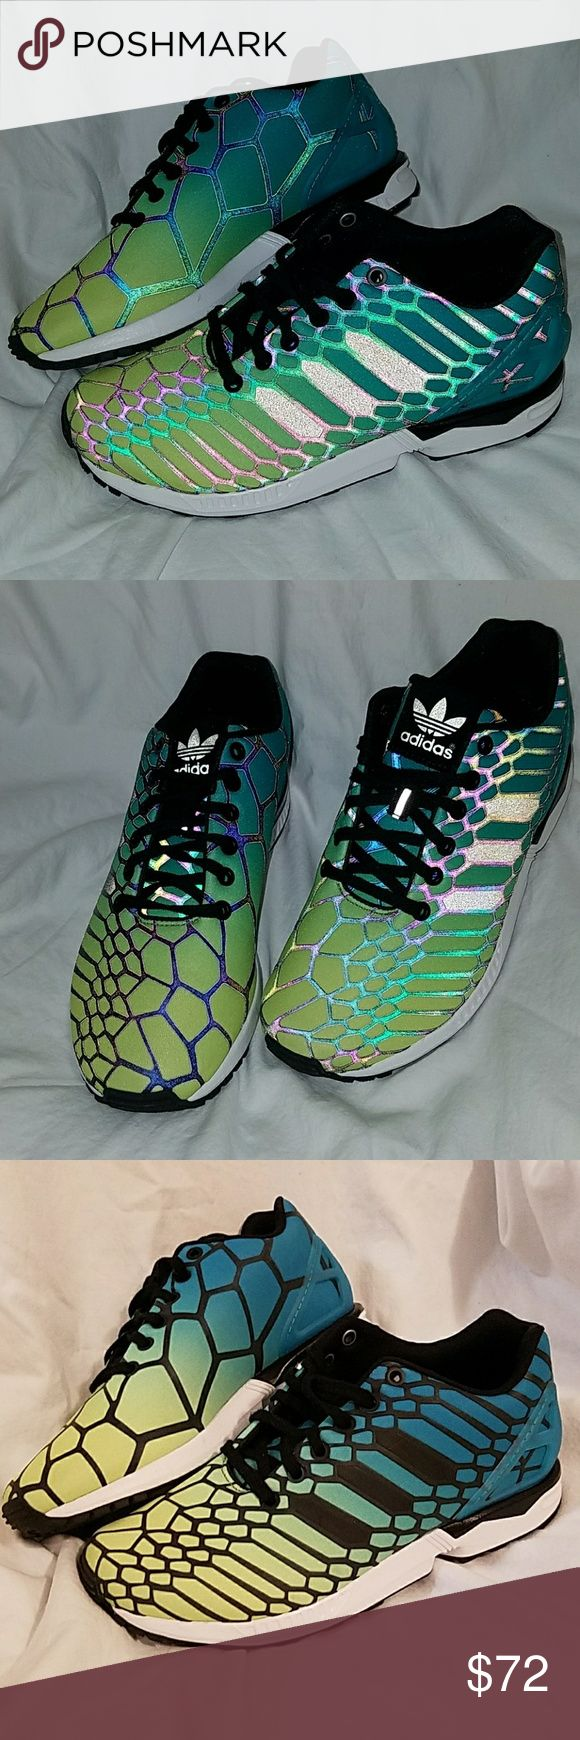 Torsion New without box sneakers that light up like crazy under headlights and flash. Also fits women size 8. adidas Shoes Sneakers